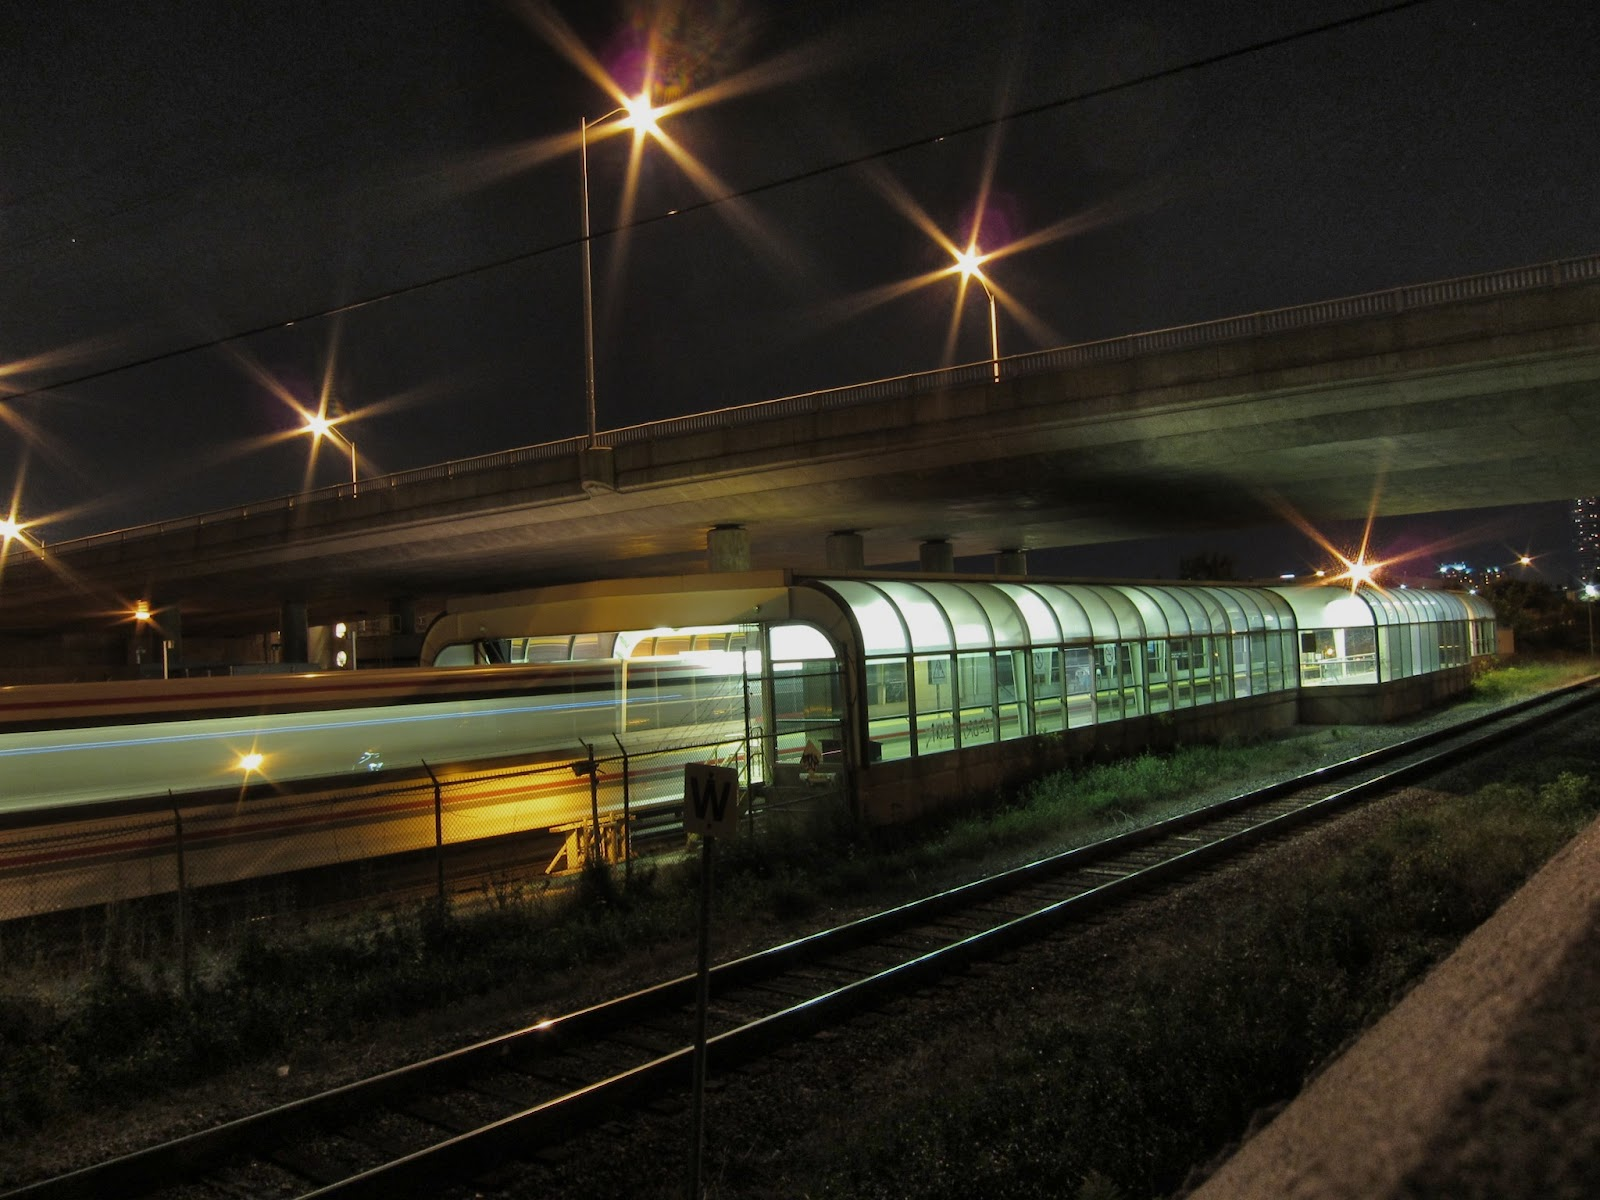 Ellesmere station exterior night view